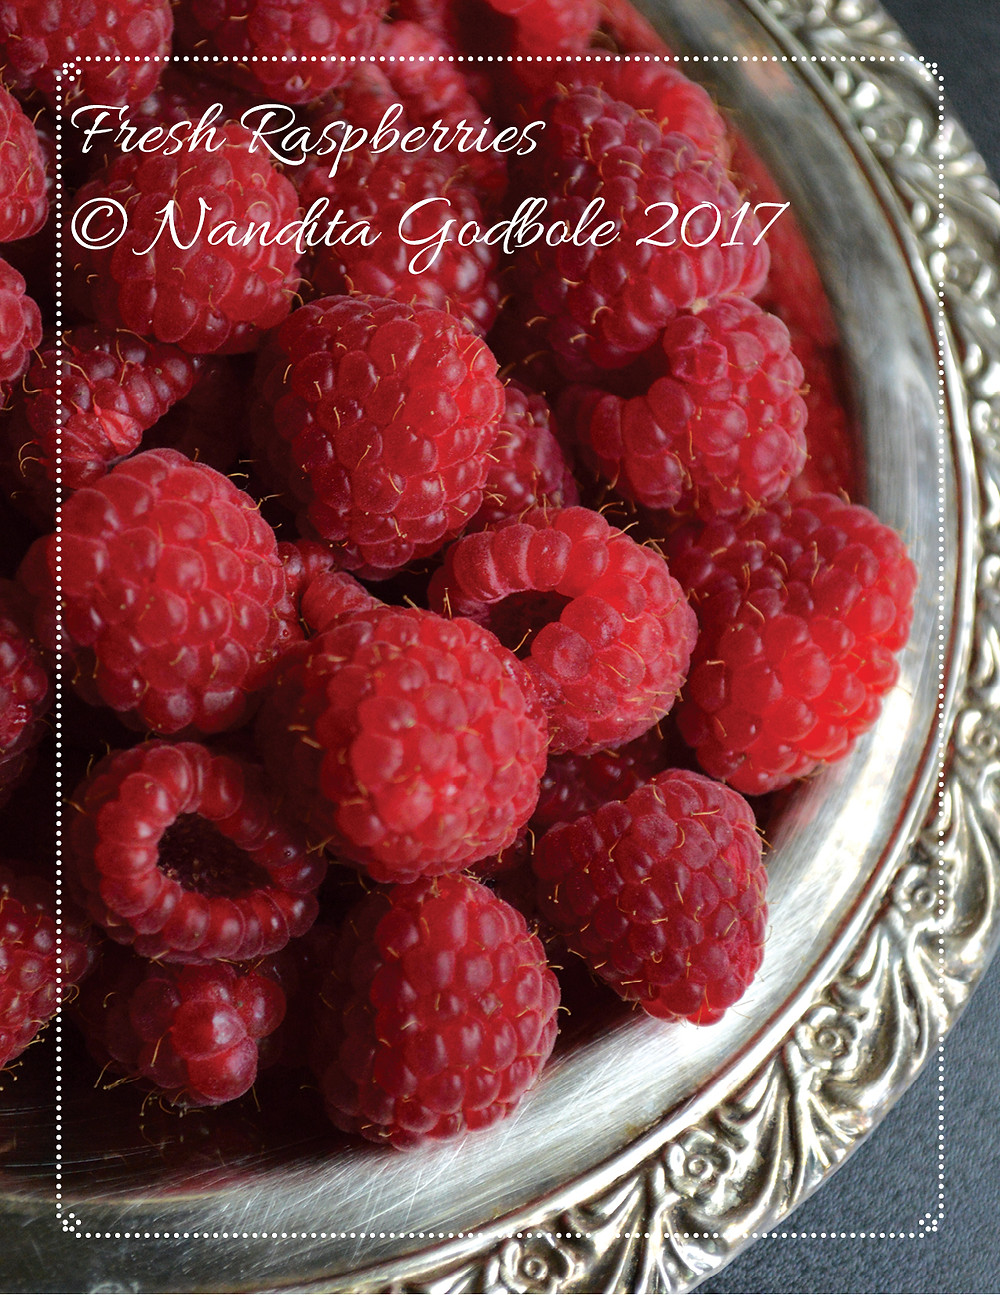 My amateur photography of raspberries.